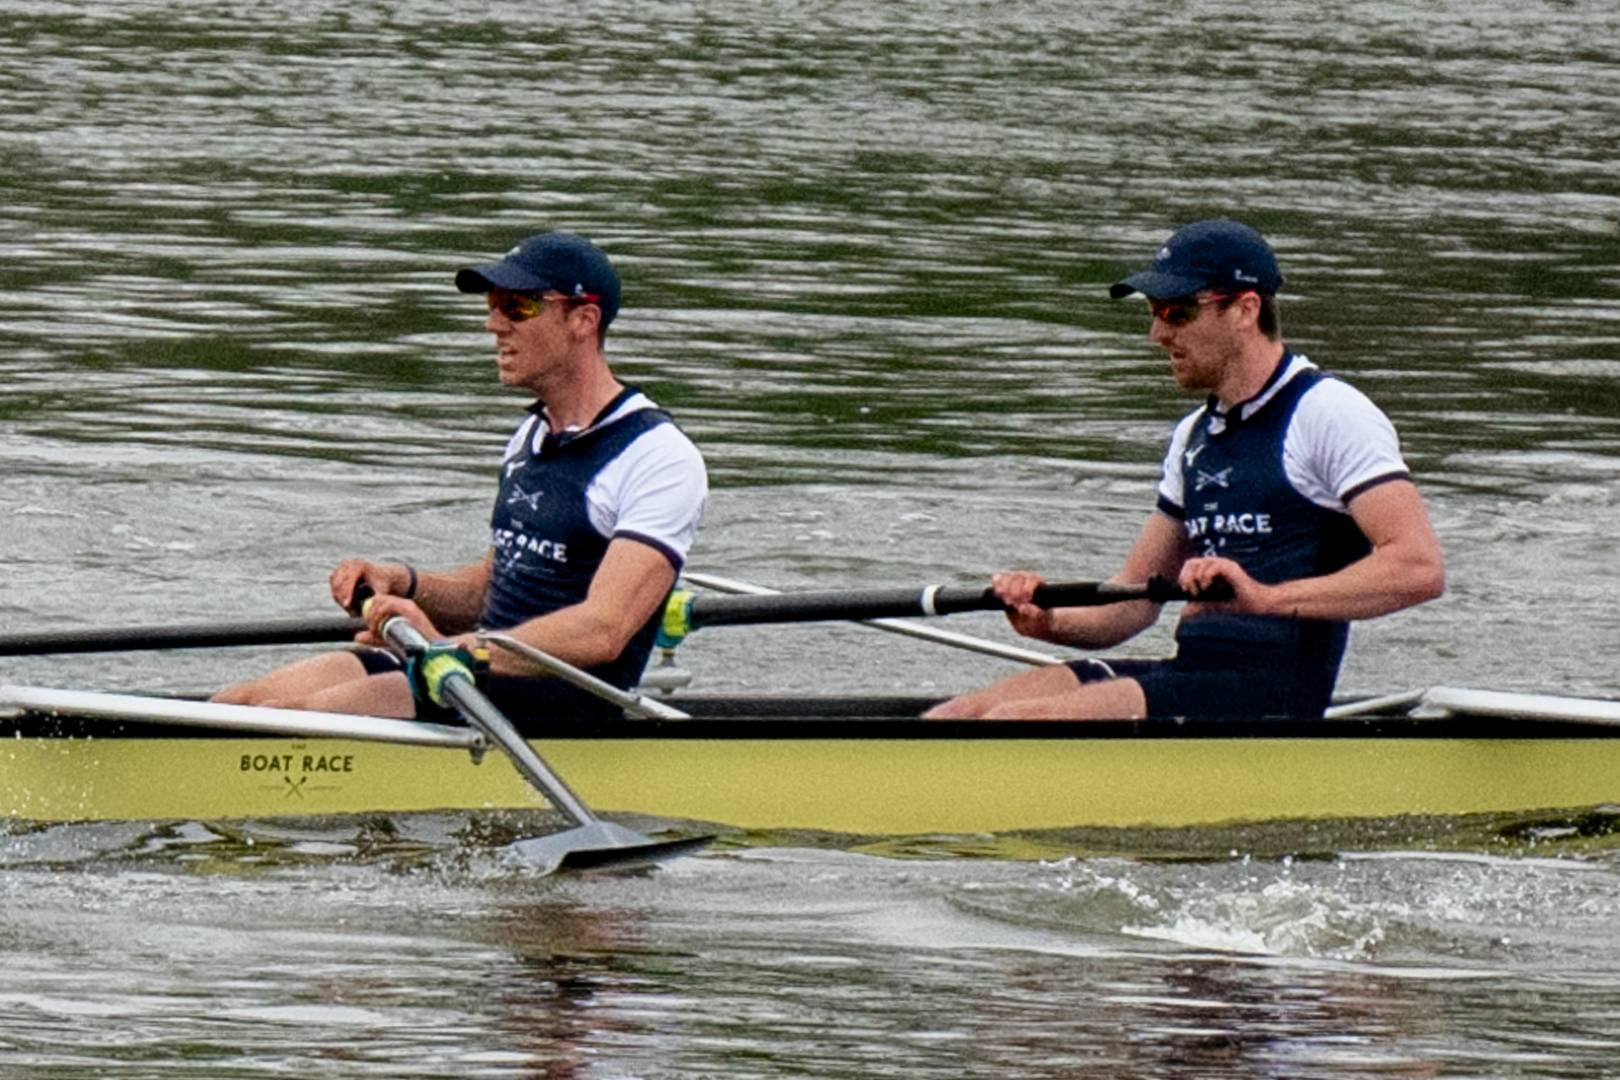 The faces of disappointment, two of the Oxford Crew mightily cropped from the Leica CL's 55-135mm lens at full chat of 200mm equivalent